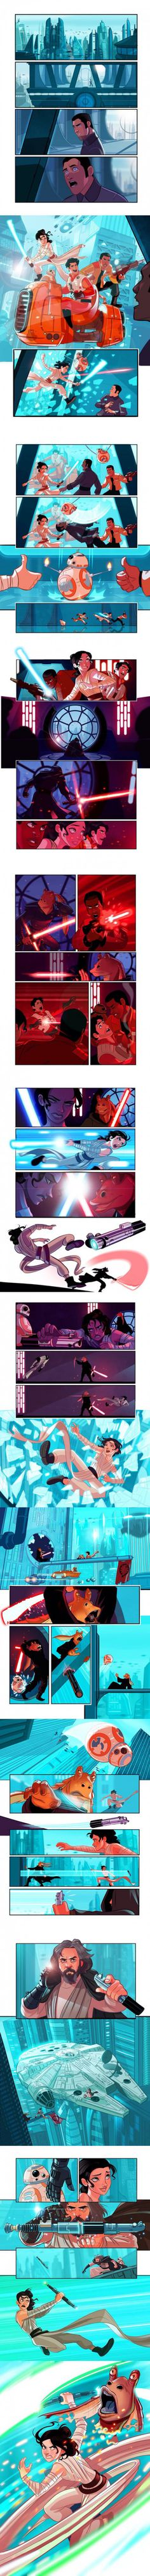 Star Wars Episode 7 1/2 by Stephen Byrne